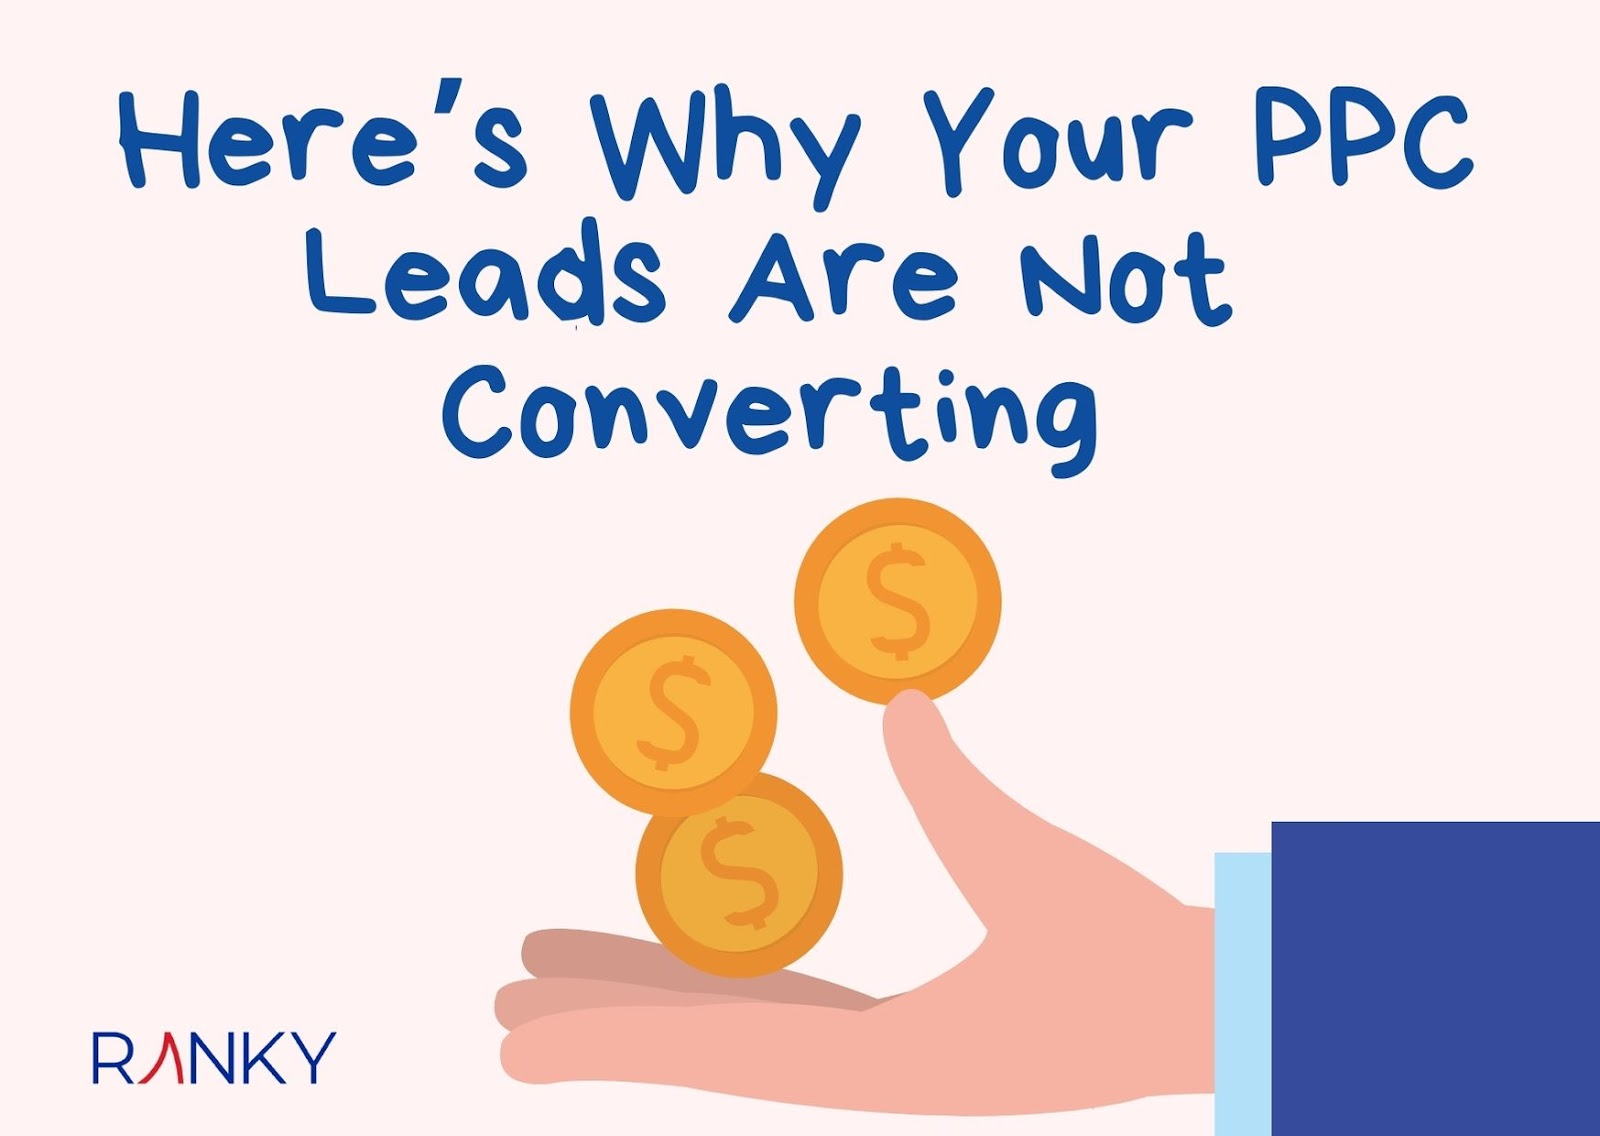 Here's Why Your PPC Leads Are Not Converting